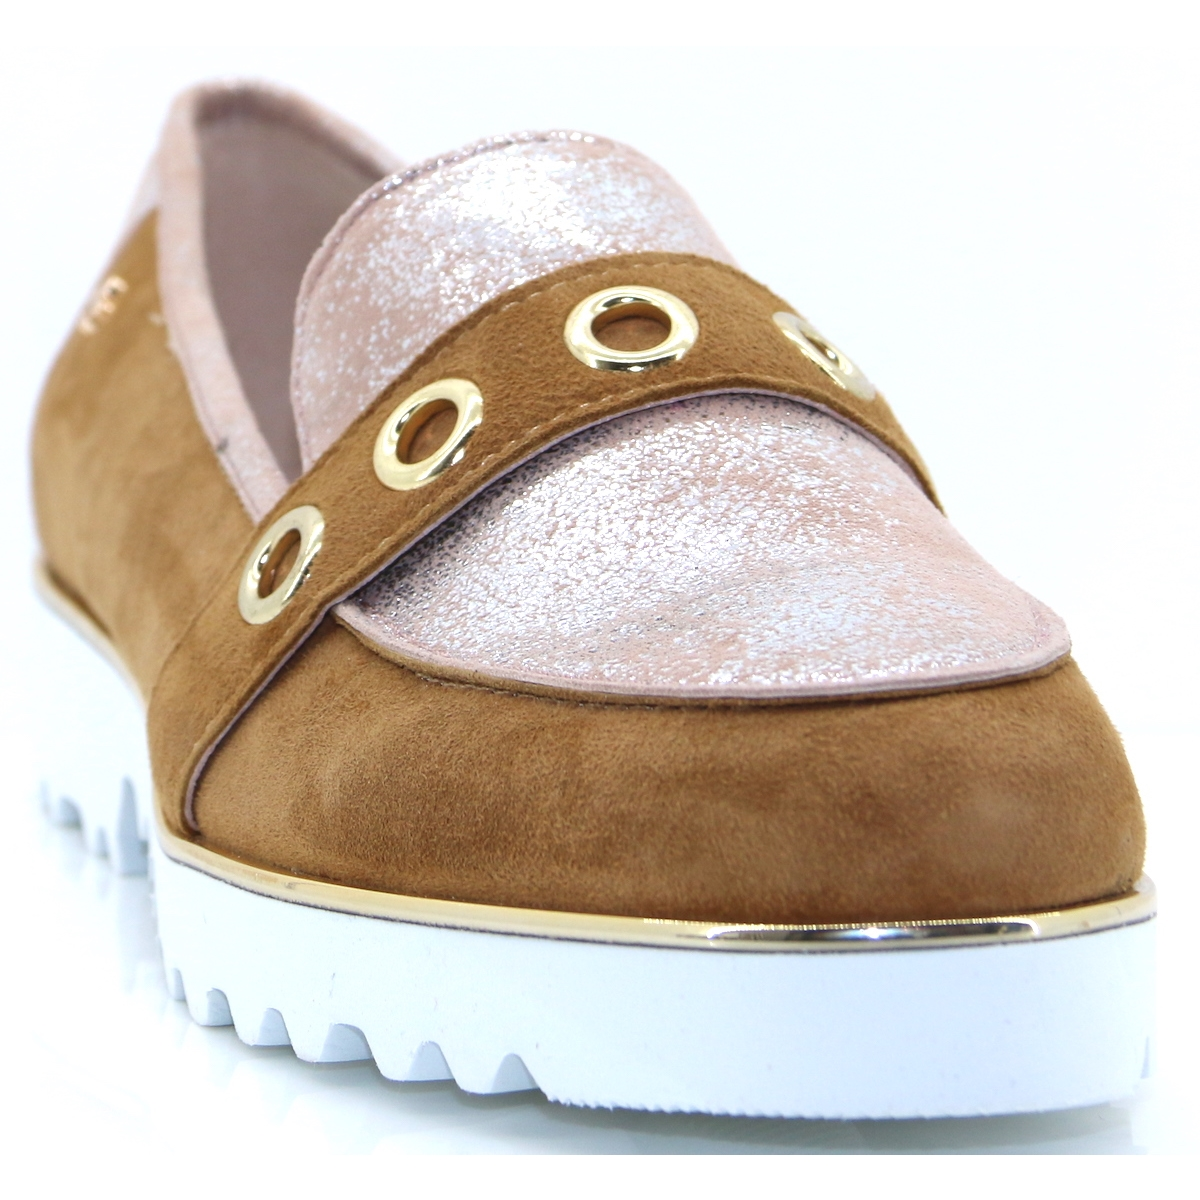 5d746bee929d Sometimes - BOURBON TAN AND ROSE LOAFERS - Panache Shoe Company